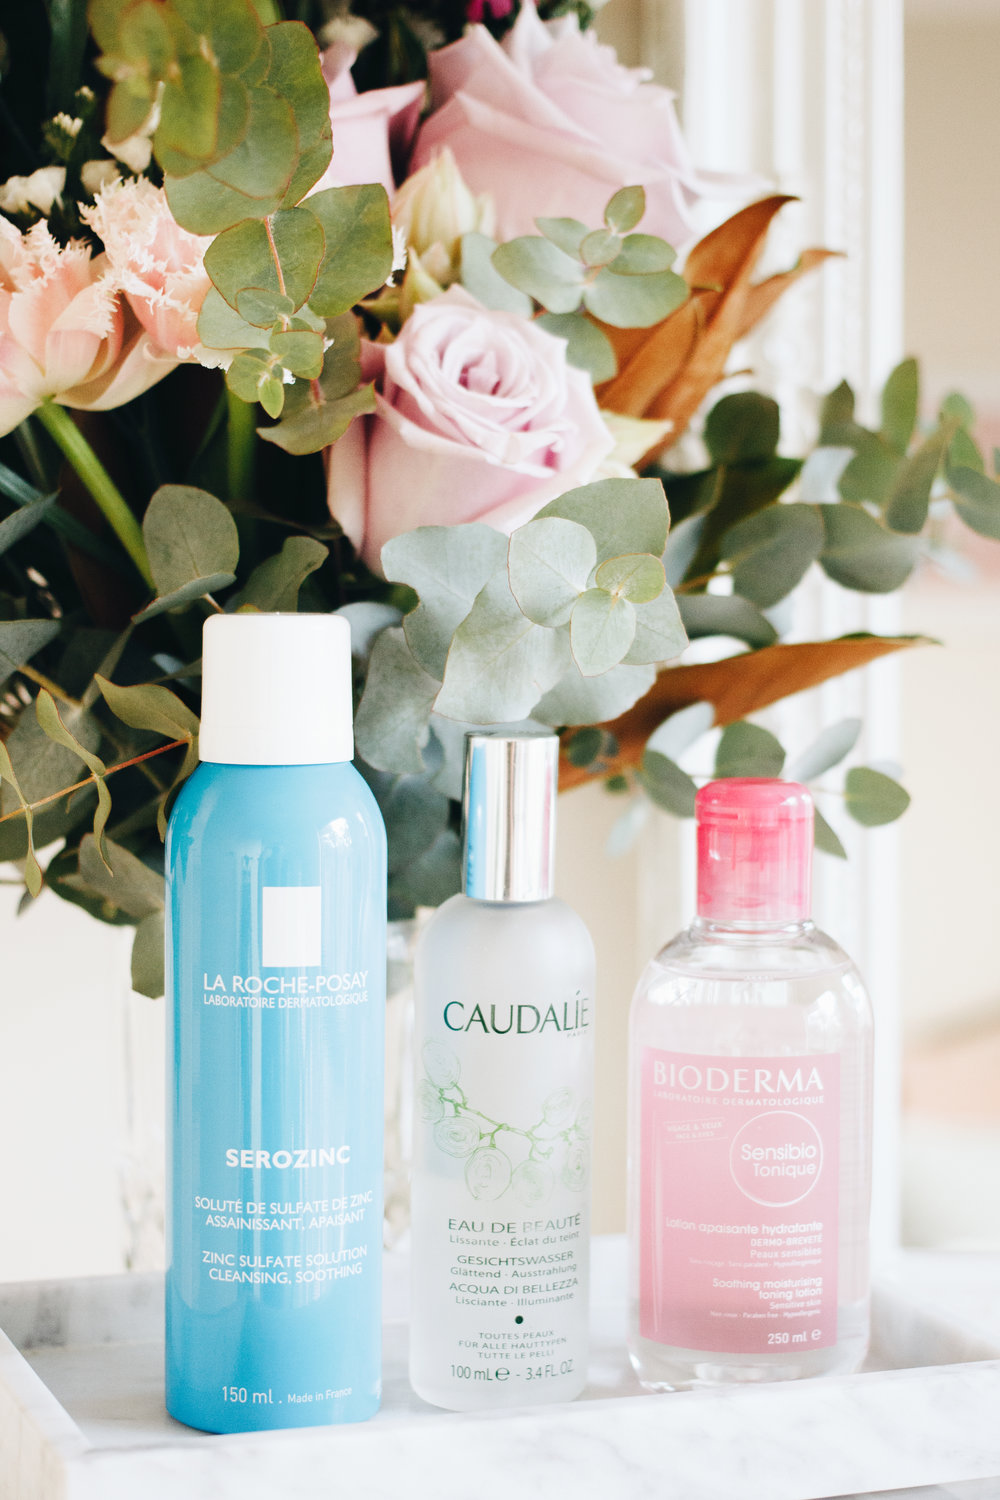 - Caudalie Beauty ElixirMy very first bottle of Caudalie Beauty Elixir was bought back in 2012 at a quaint little Parisian pharmacy. A spritz of this reinvigorating mist instantly takes me back to my summer in Europe and I have to admit, the scent is the main reason why I love this toner so much. Like the Herbivore Rose Hibiscus Hydrating Face Mist, I don't use it in the traditional manner after cleansing, but it's one I keep around for a pick-me-up as it's something really therapeutic, yet energising at the same time. While I did use Beauty Elixir as a proper toner up until a couple of years ago, I stopped when I started looking more thoroughly into skincare ingredients and learning just how damaging things like alcohol and essential oils - which Beauty Elixir contains a lot of - can be. Alcohol is a huge no-no for those who are on the drier side and for that reason, I don't feel comfortable applying this to bare, freshly cleansed skin. As previously mentioned, essential oils can also be irritating, but I can't really complain there since I don't have sensitive skin and they're also why this stuff smells so damn good!Containing a blend of grape, orange blossom, rose, mint and rosemary, I apply Beauty Elixir over makeup or after my whole skincare routine, but I also enjoy simply spritzing it into the air and taking in its refreshing and cooling goodness. It's said to